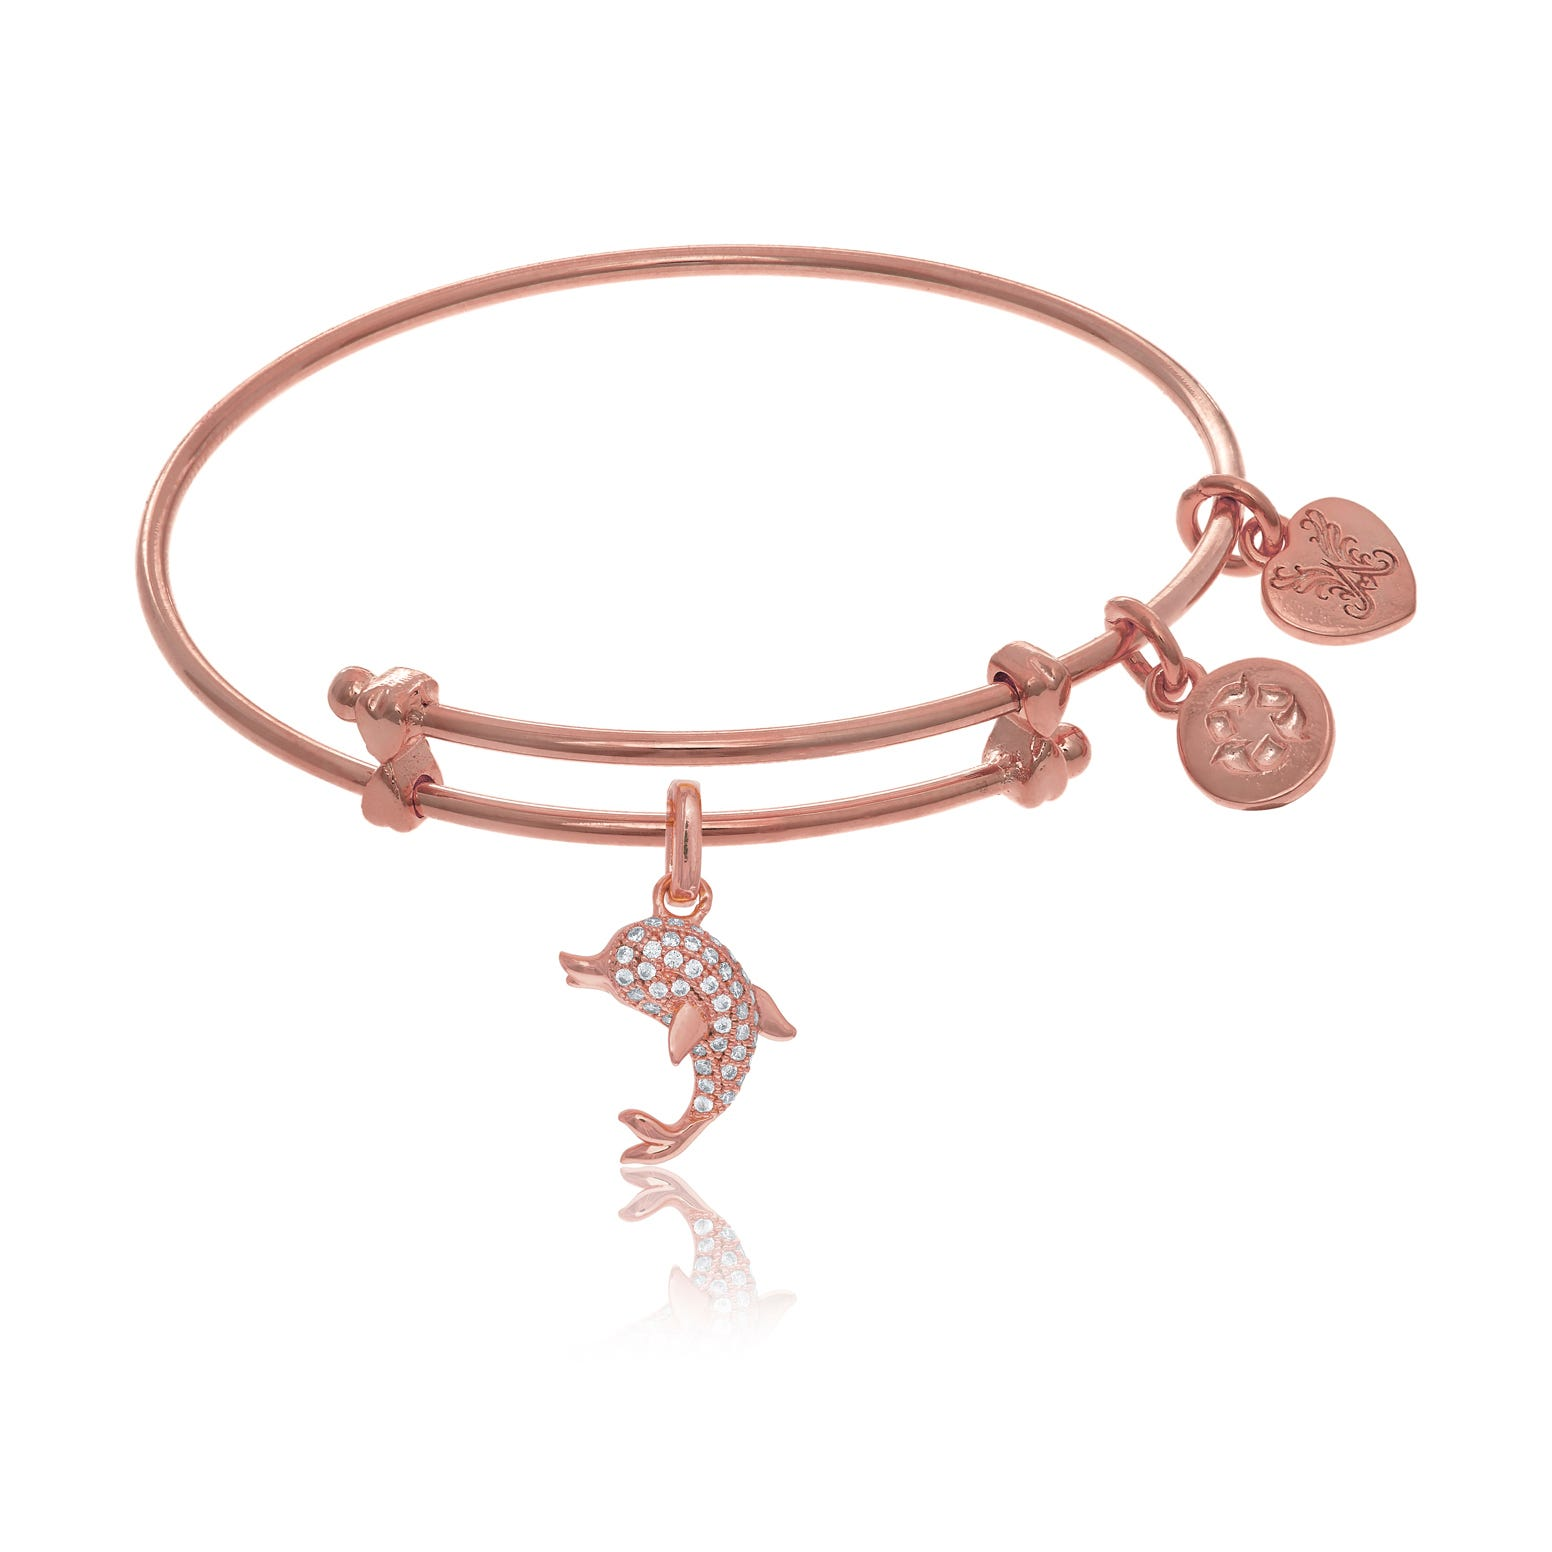 Dolphin Crystal Charm Tween Bangle Bracelet in Pink Brass